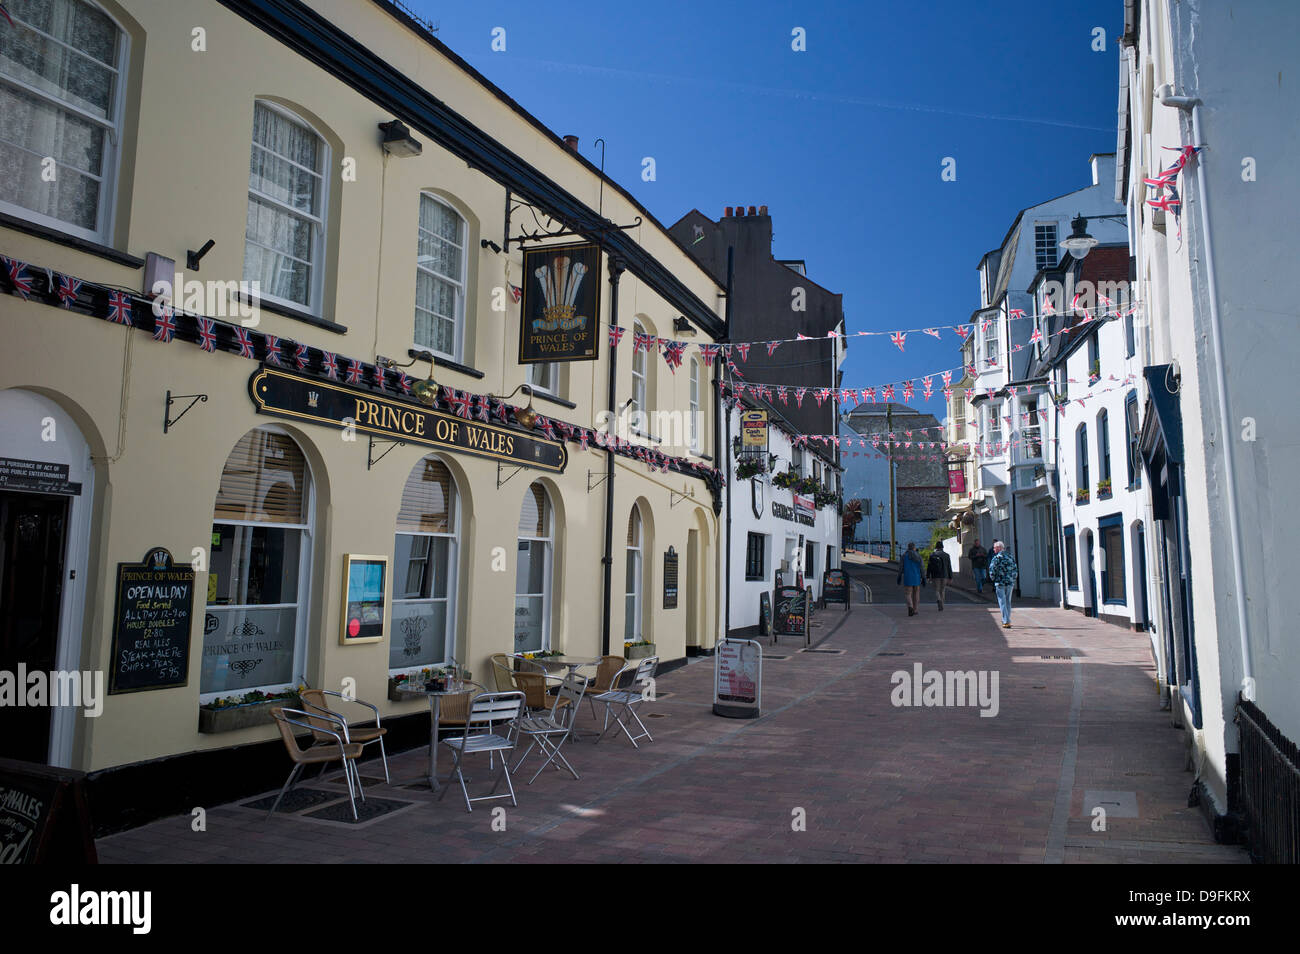 Street in the town centre, Ilfracombe, Devon, England, UK - Stock Image